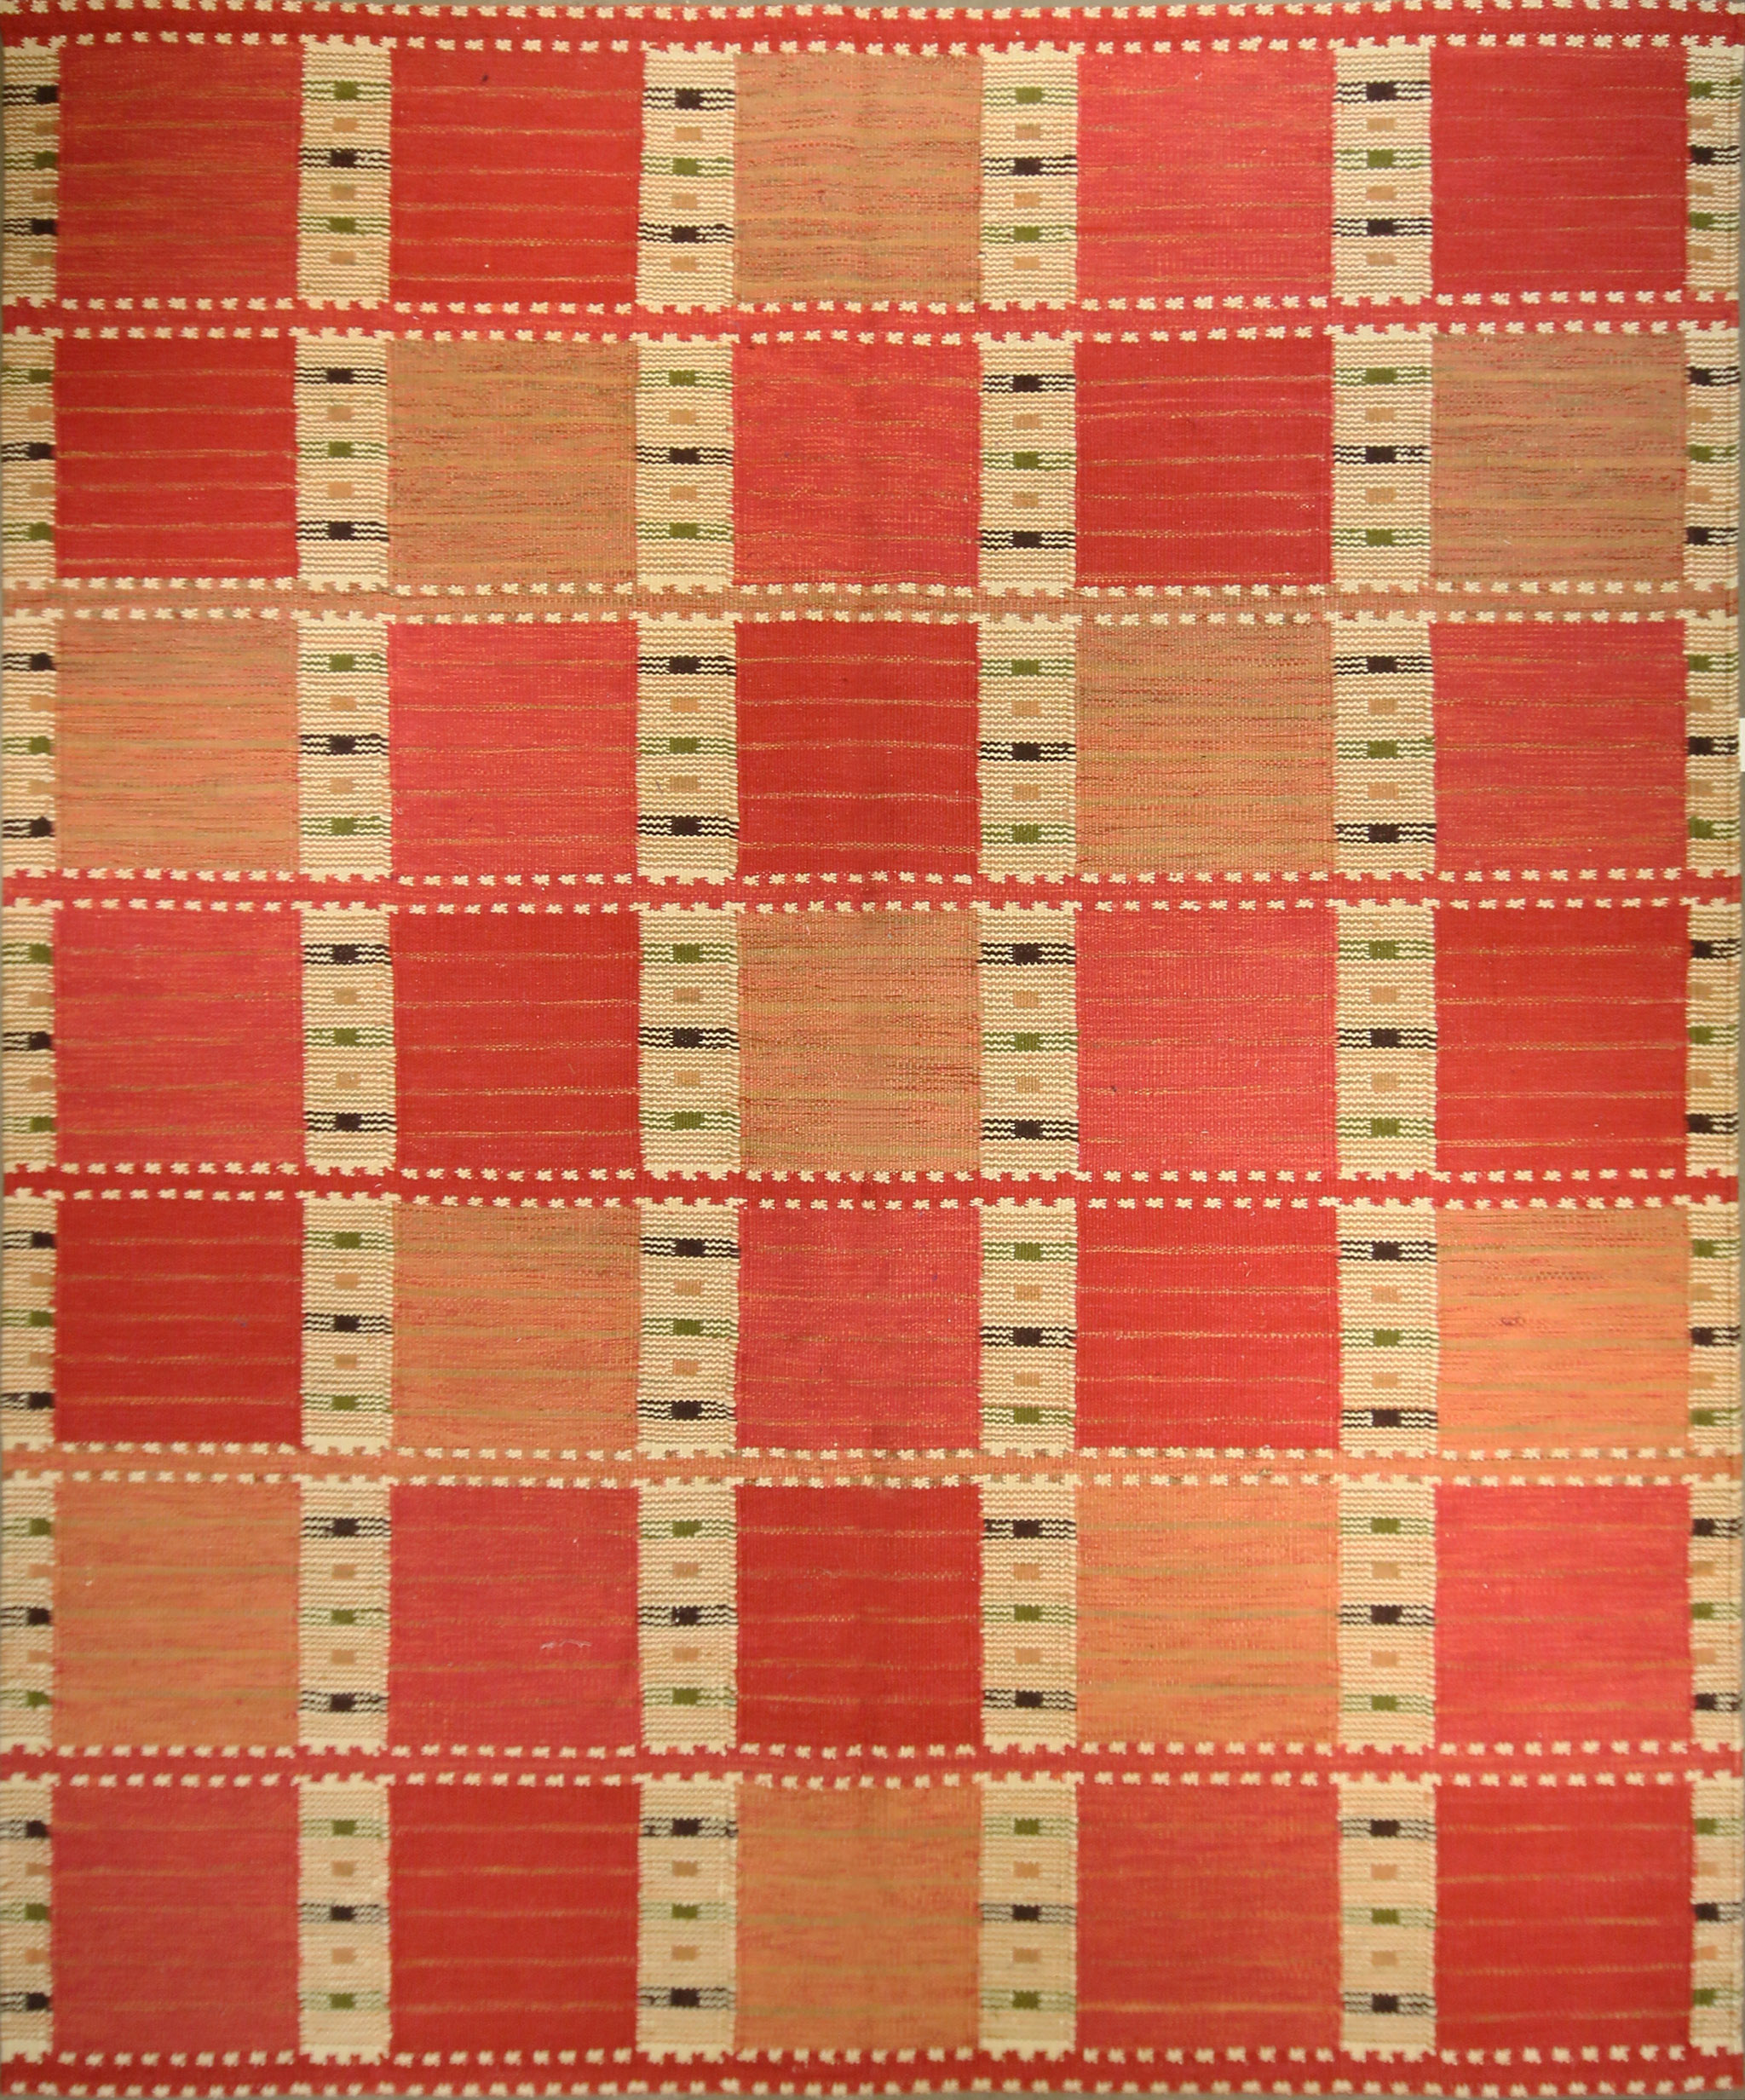 Design 'SHB-022' by Rug & Kilim. | Image courtesy of Rug & Kilim.